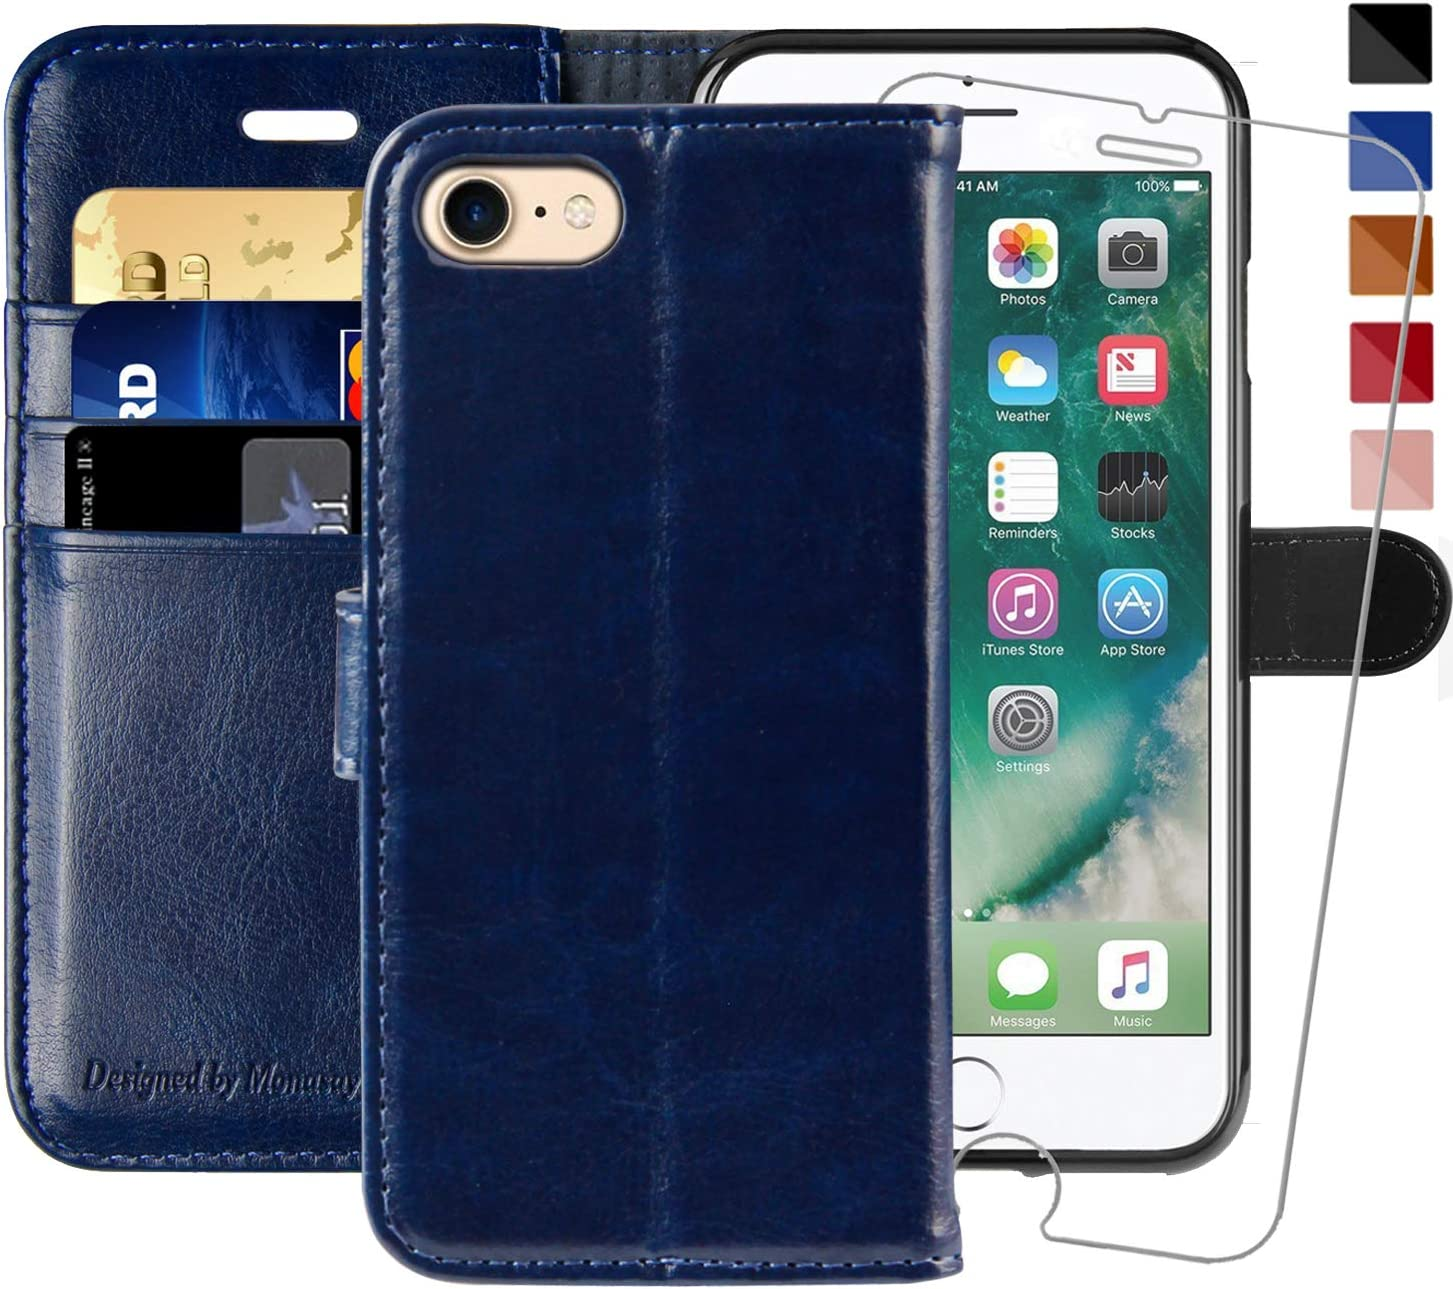 iPhone 6 Wallet Case/iPhone 6s Wallet Case,4.7-inch, MONASAY [Glass Screen Protector Included] Flip Folio Leather Cell Phone Cover with Credit Card Holder for Apple iPhone 6/6S (Blue)